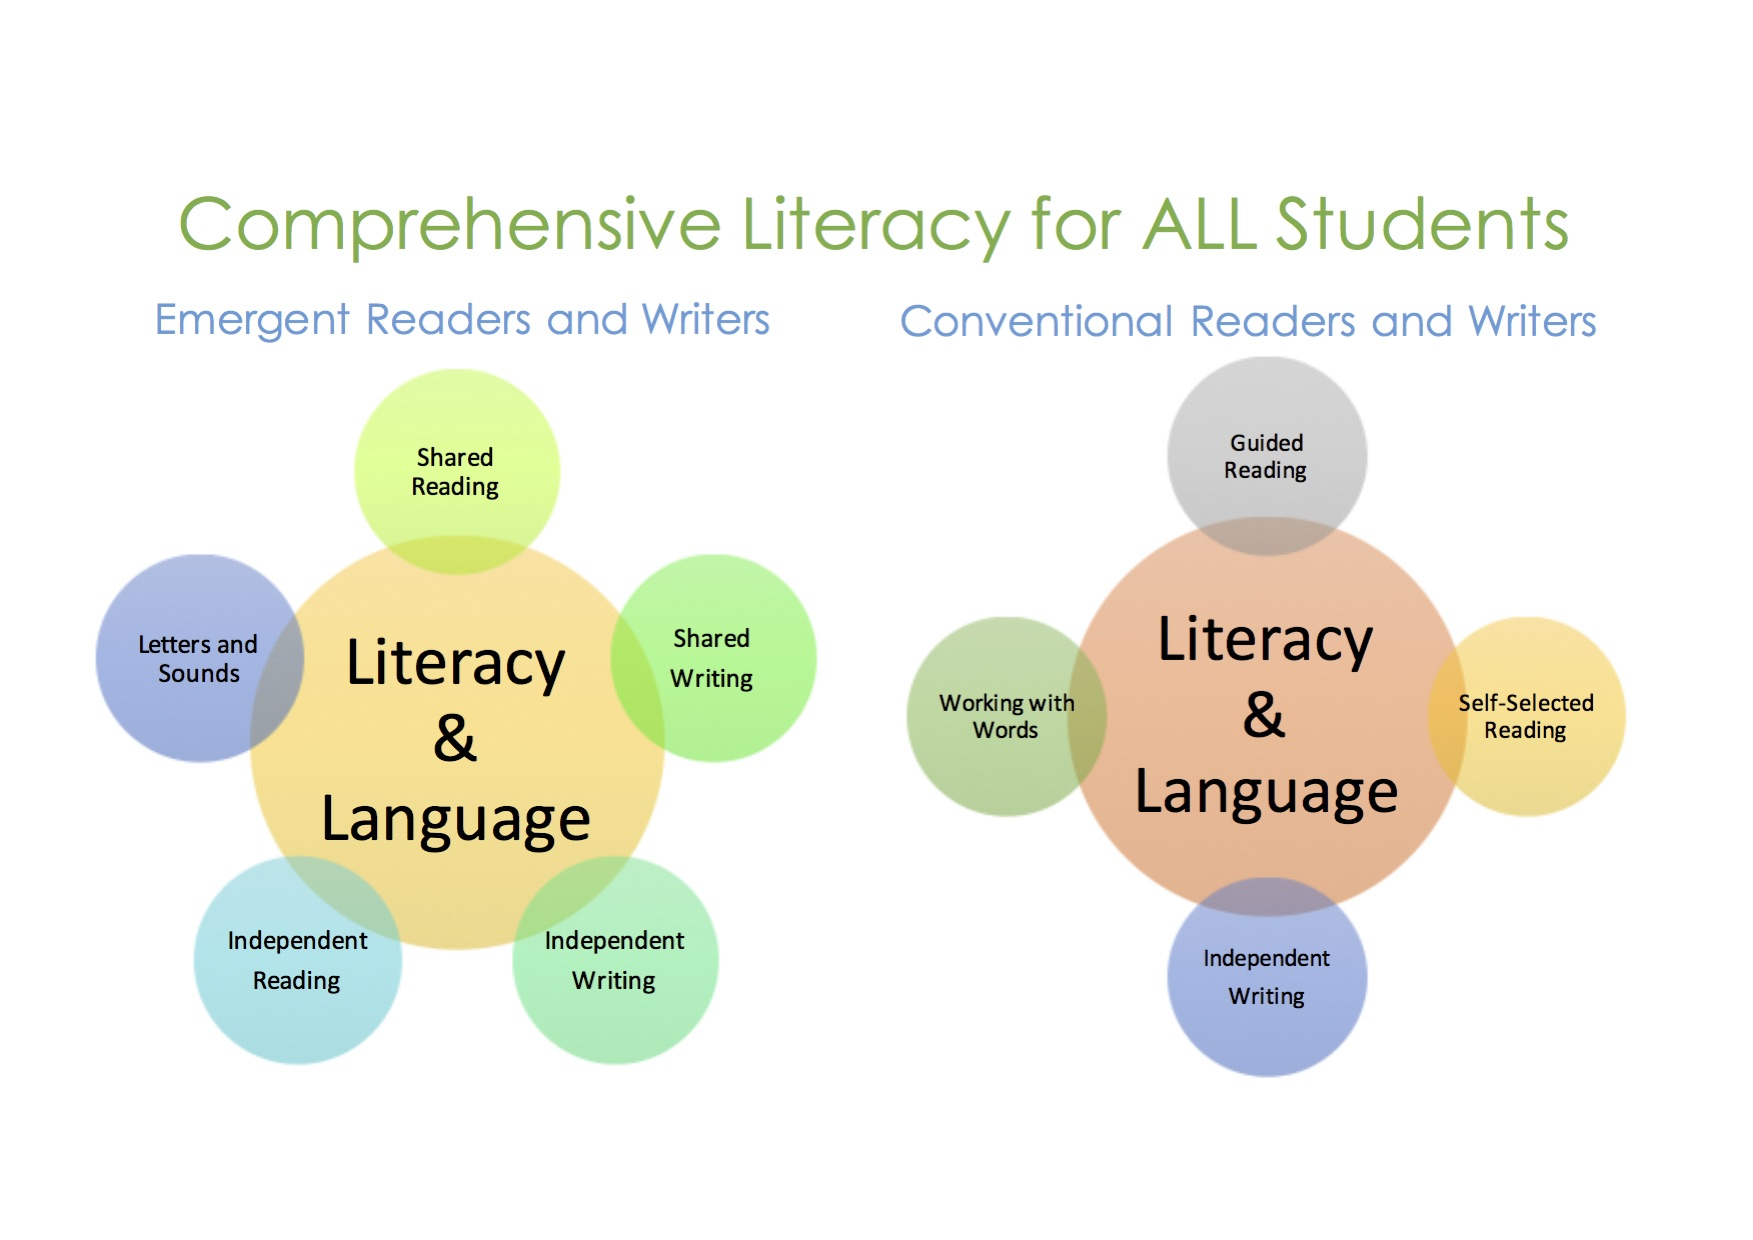 Should Literacy Instruction Be >> Comprehensive Literacy Instruction Meeting The Instructional Needs